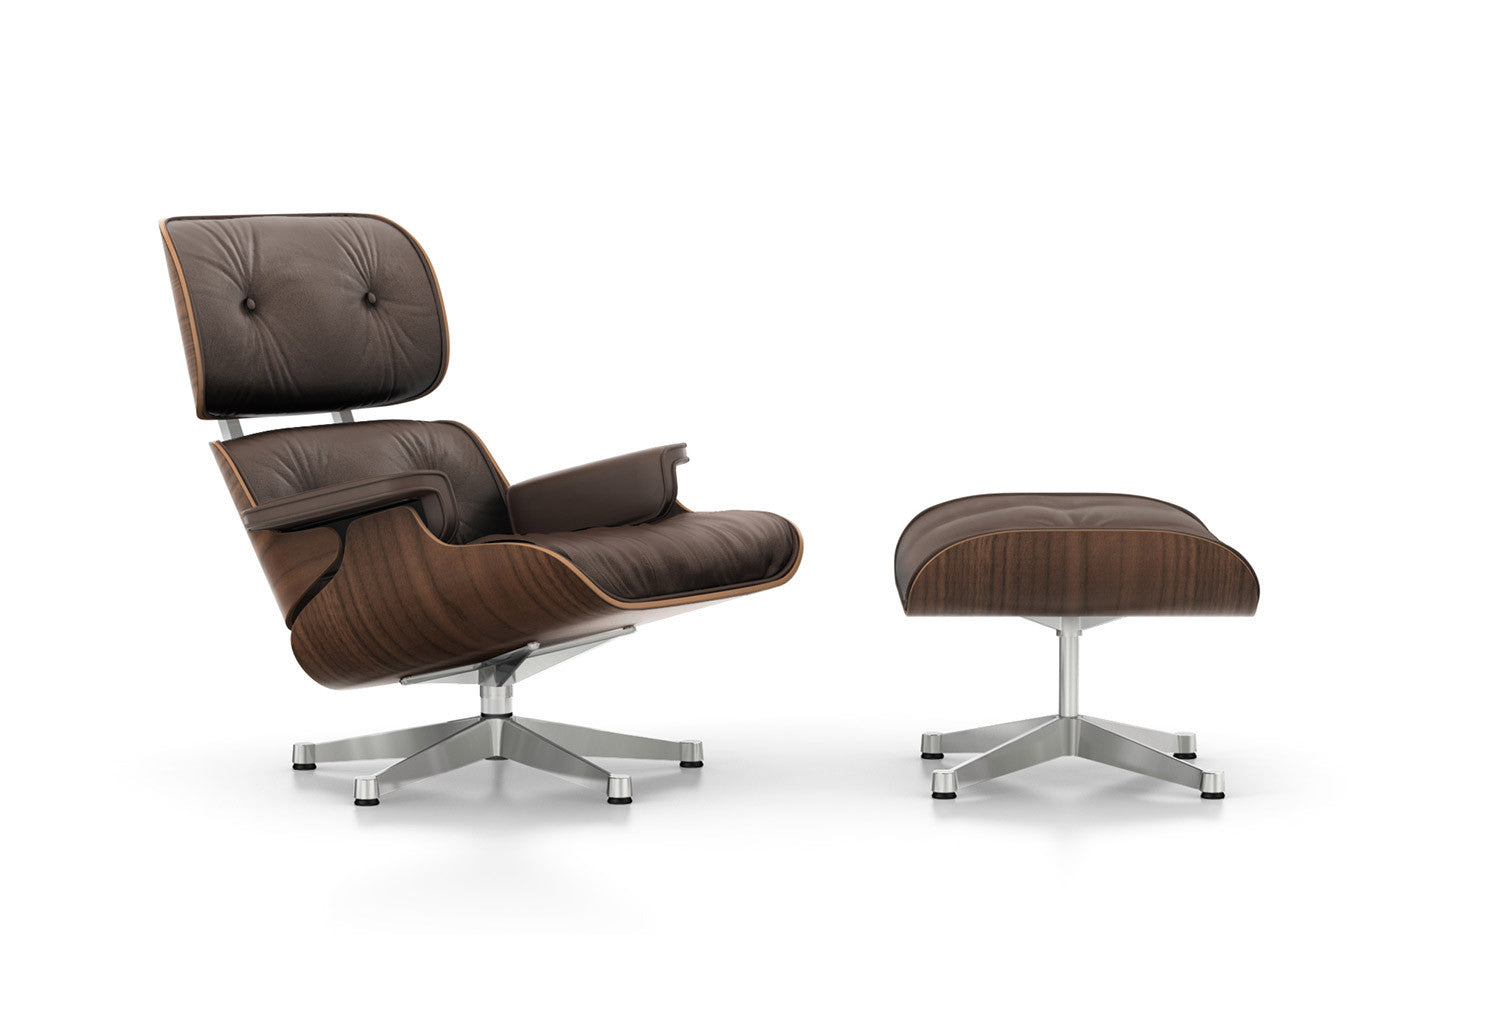 knoll eames chair. Eames Lounge Chair And Ottoman Walnut Black Pigmented - Winter Edition Knoll